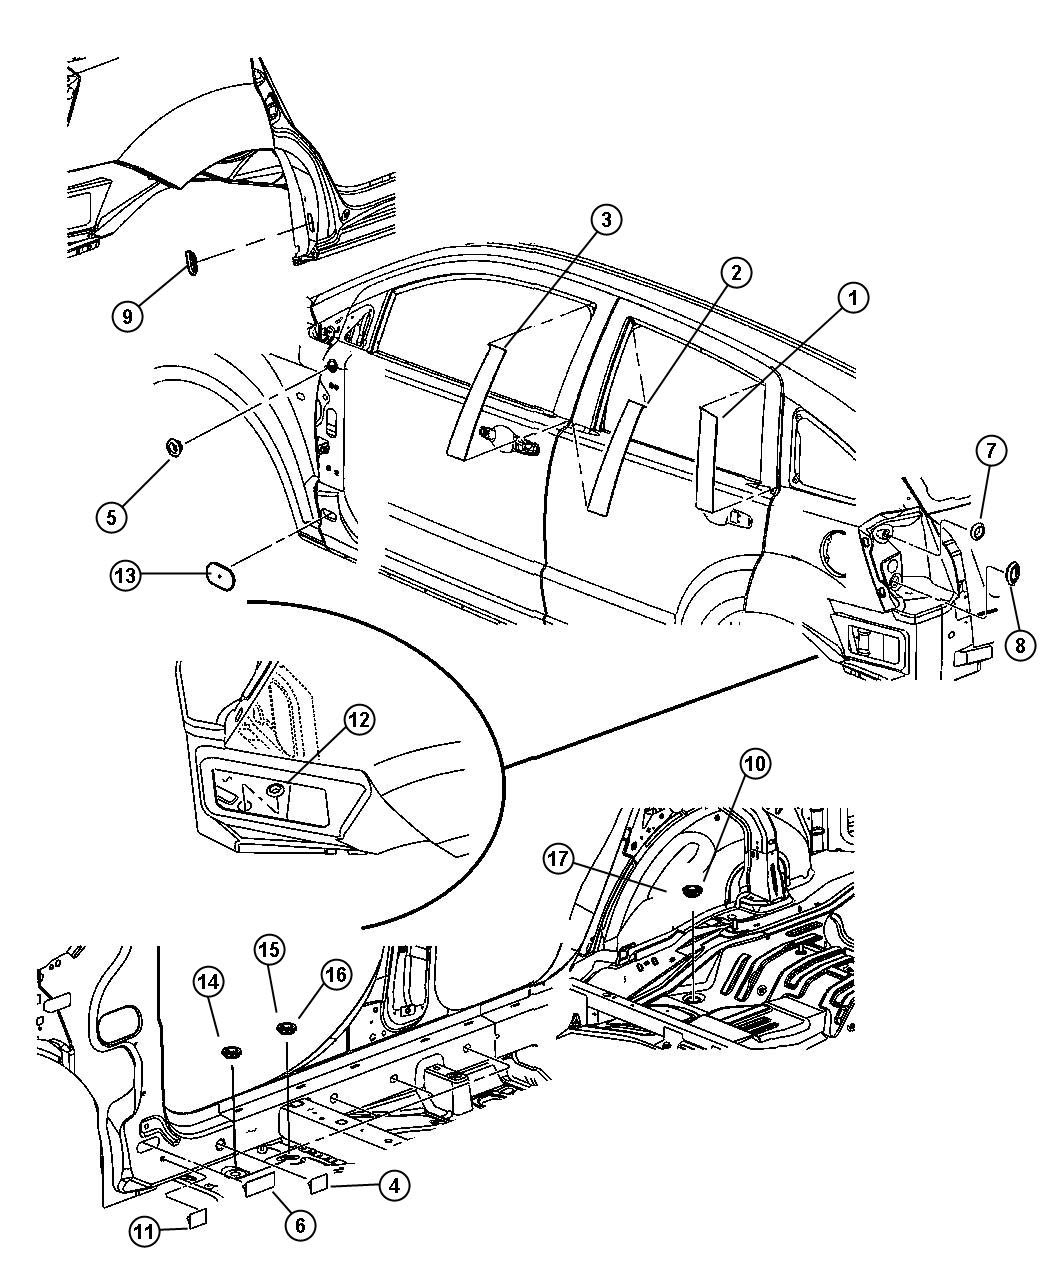 Wiring Diagram: 31 2007 Dodge Caliber Parts Diagram